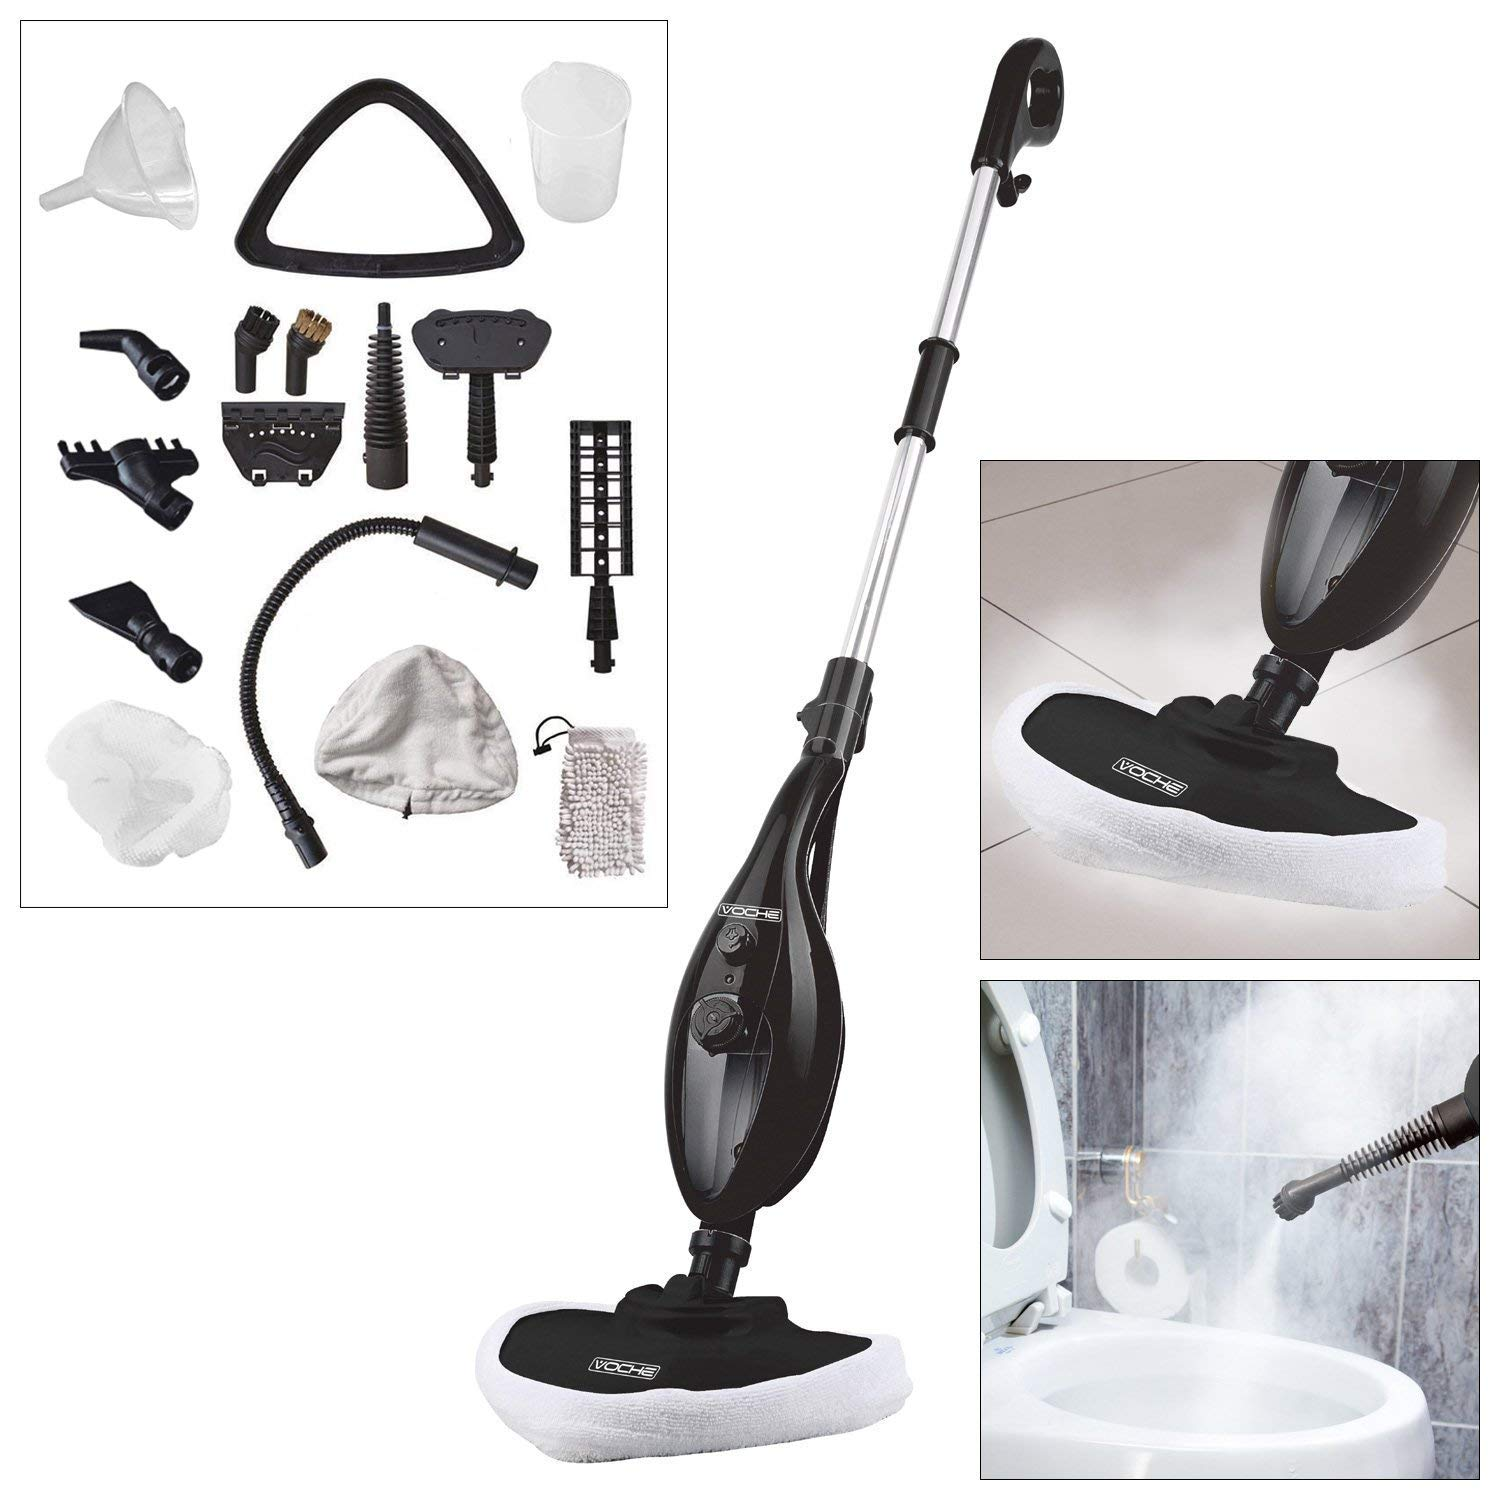 Voche® Black 1300W 16-in-1 Upright Steam Mop with Detachable Hand-Held Steam Cleaner